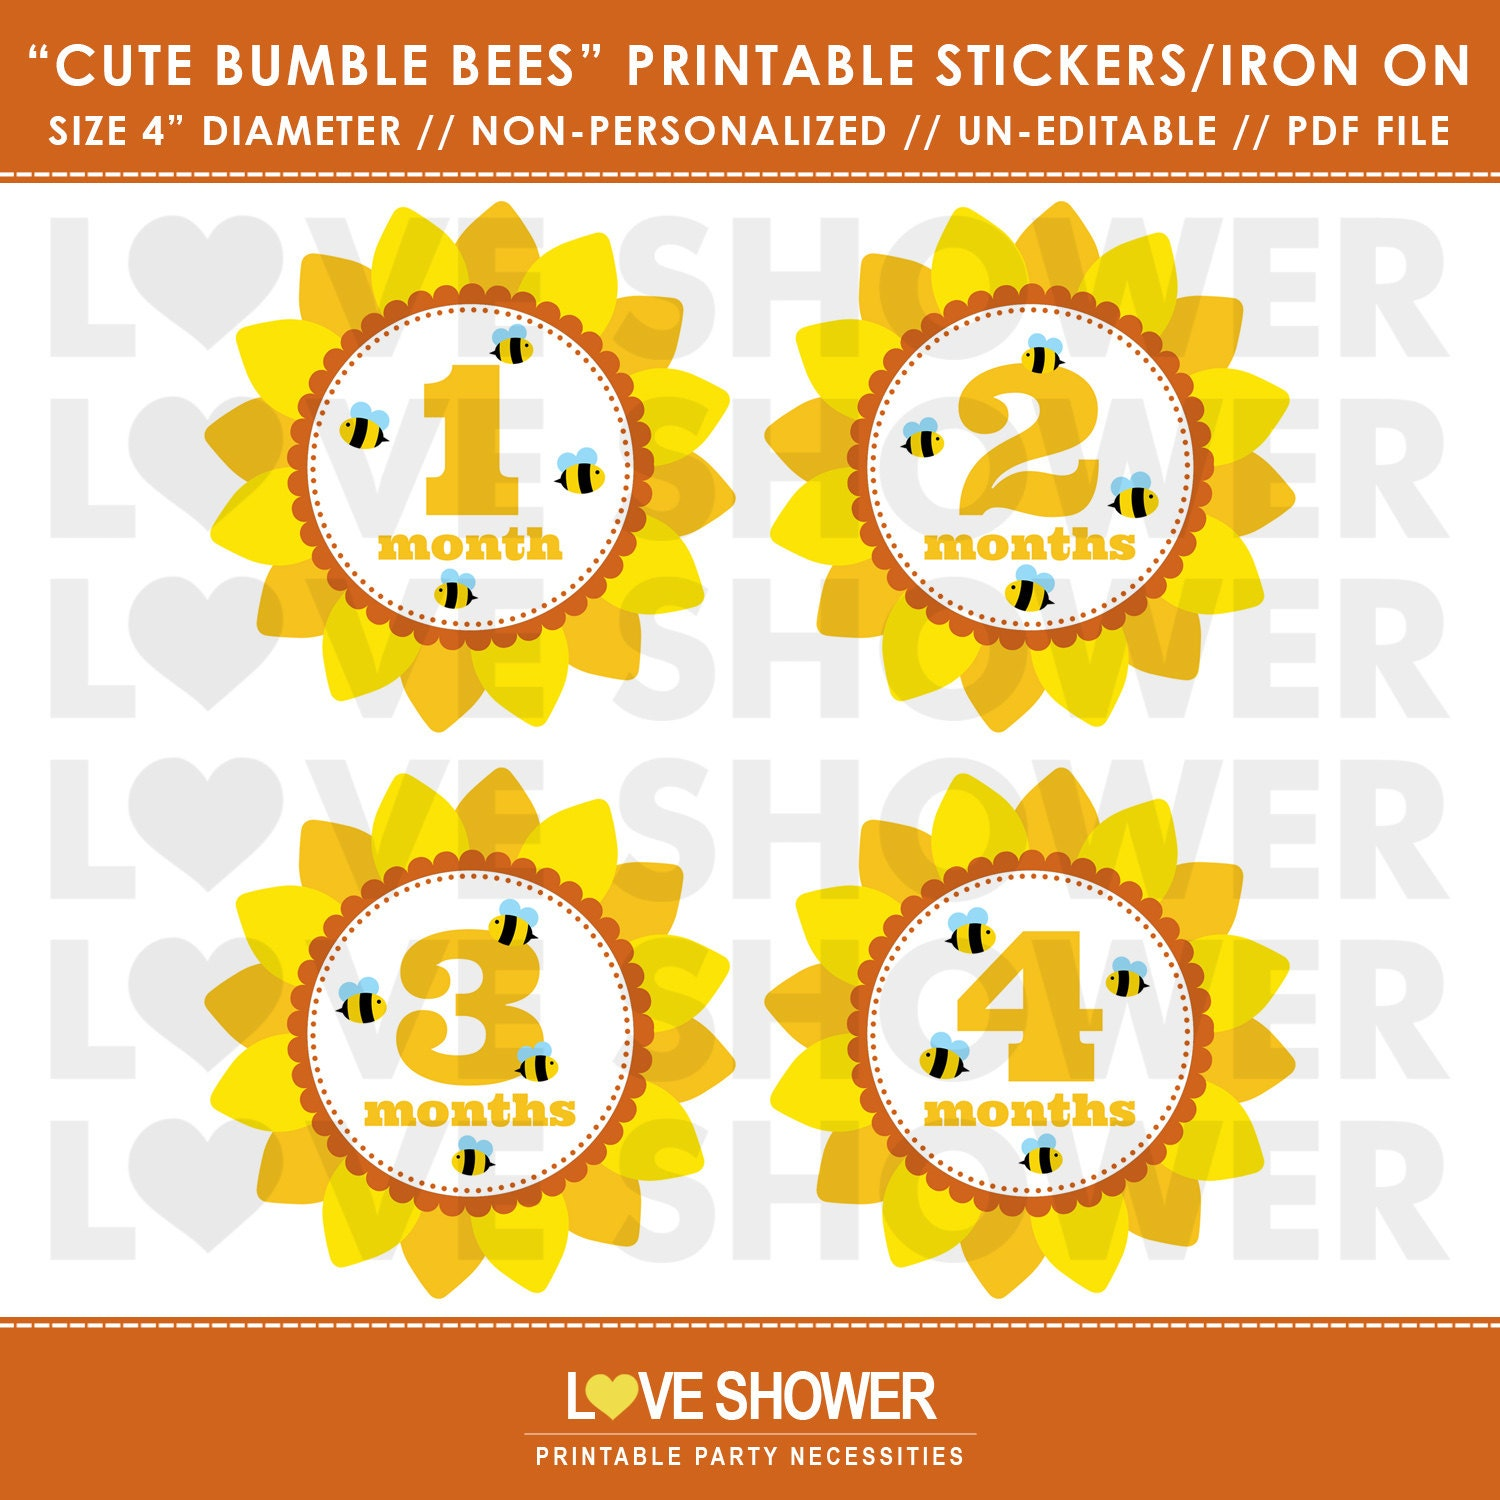 This is a graphic of Juicy Printable Iron on Transfers